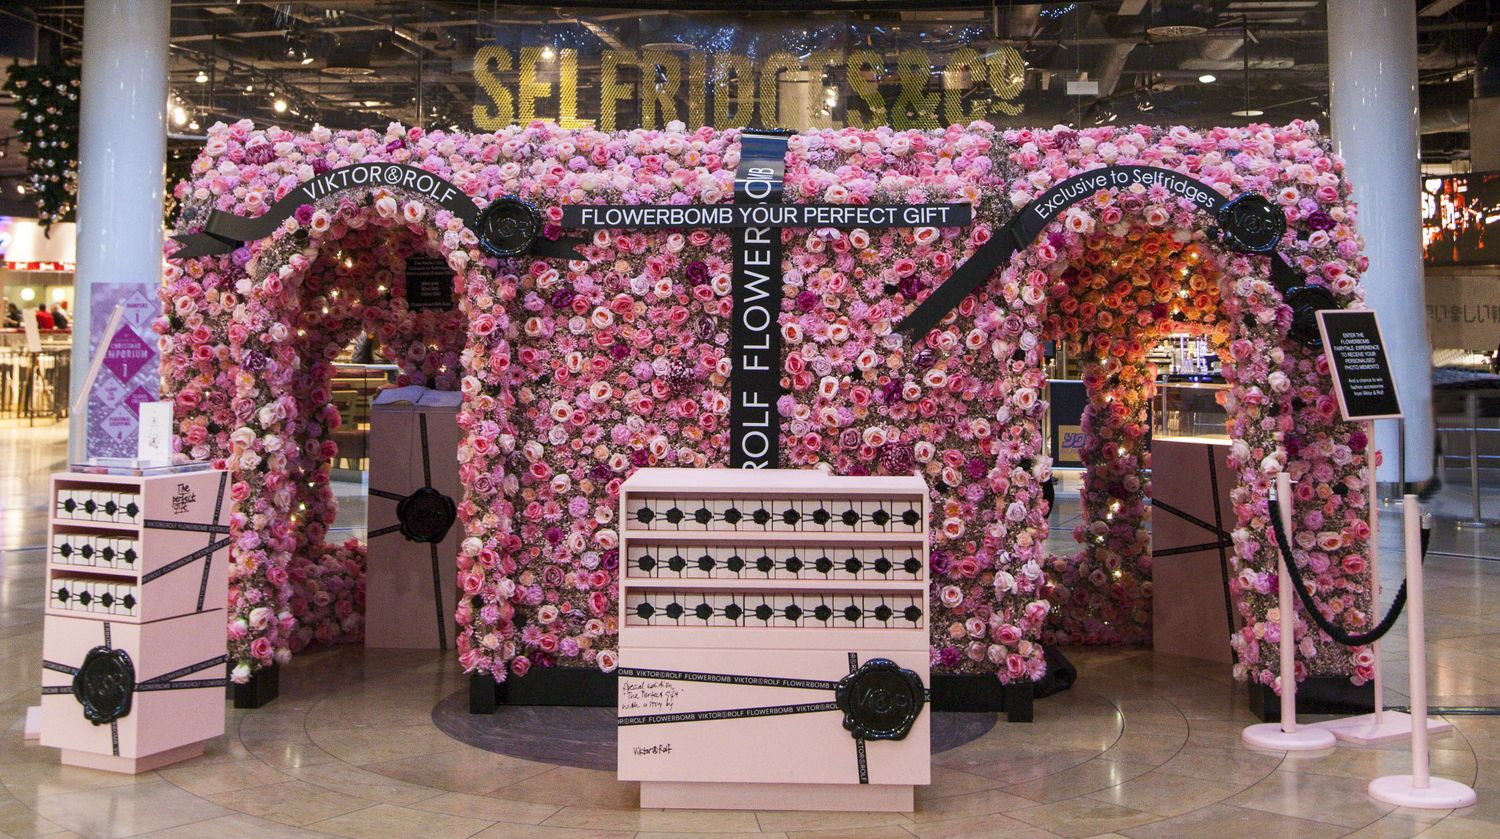 image result for viktor and rolf flowerbomb ad point of sale pinterest search galleries. Black Bedroom Furniture Sets. Home Design Ideas